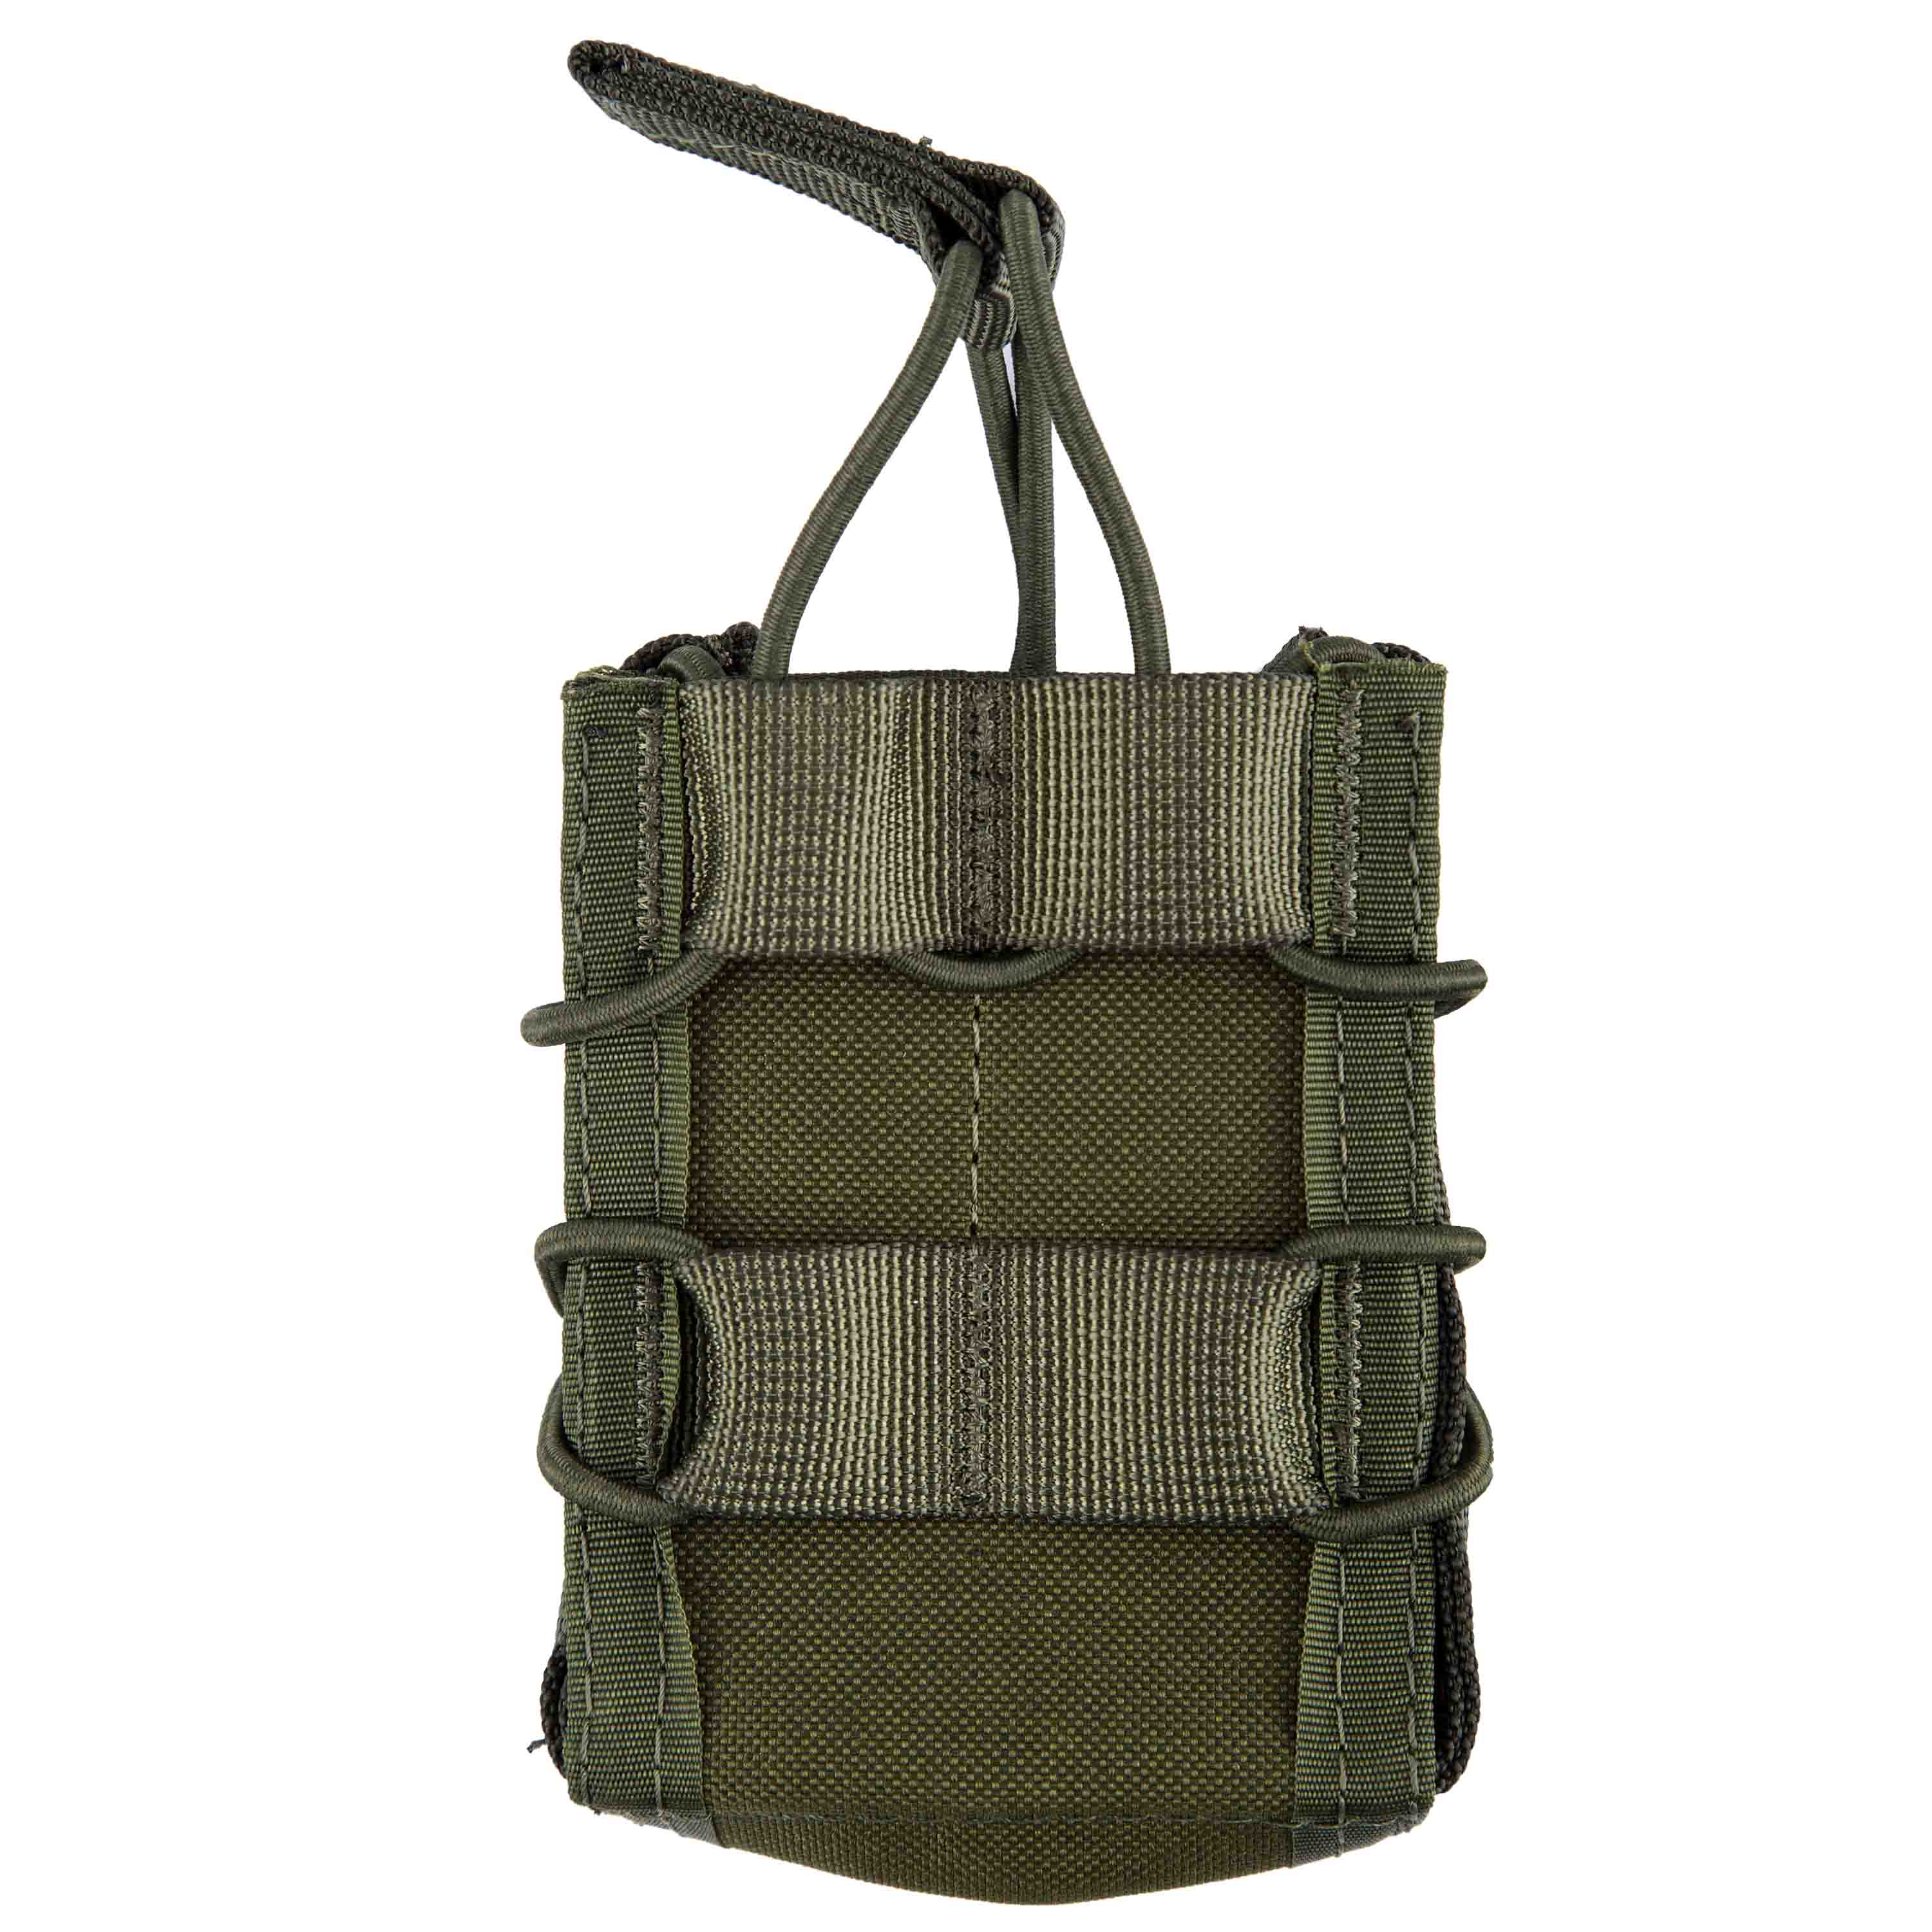 Invader Gear Porte-chargeur 5.56 Fast Mag Pouch od green